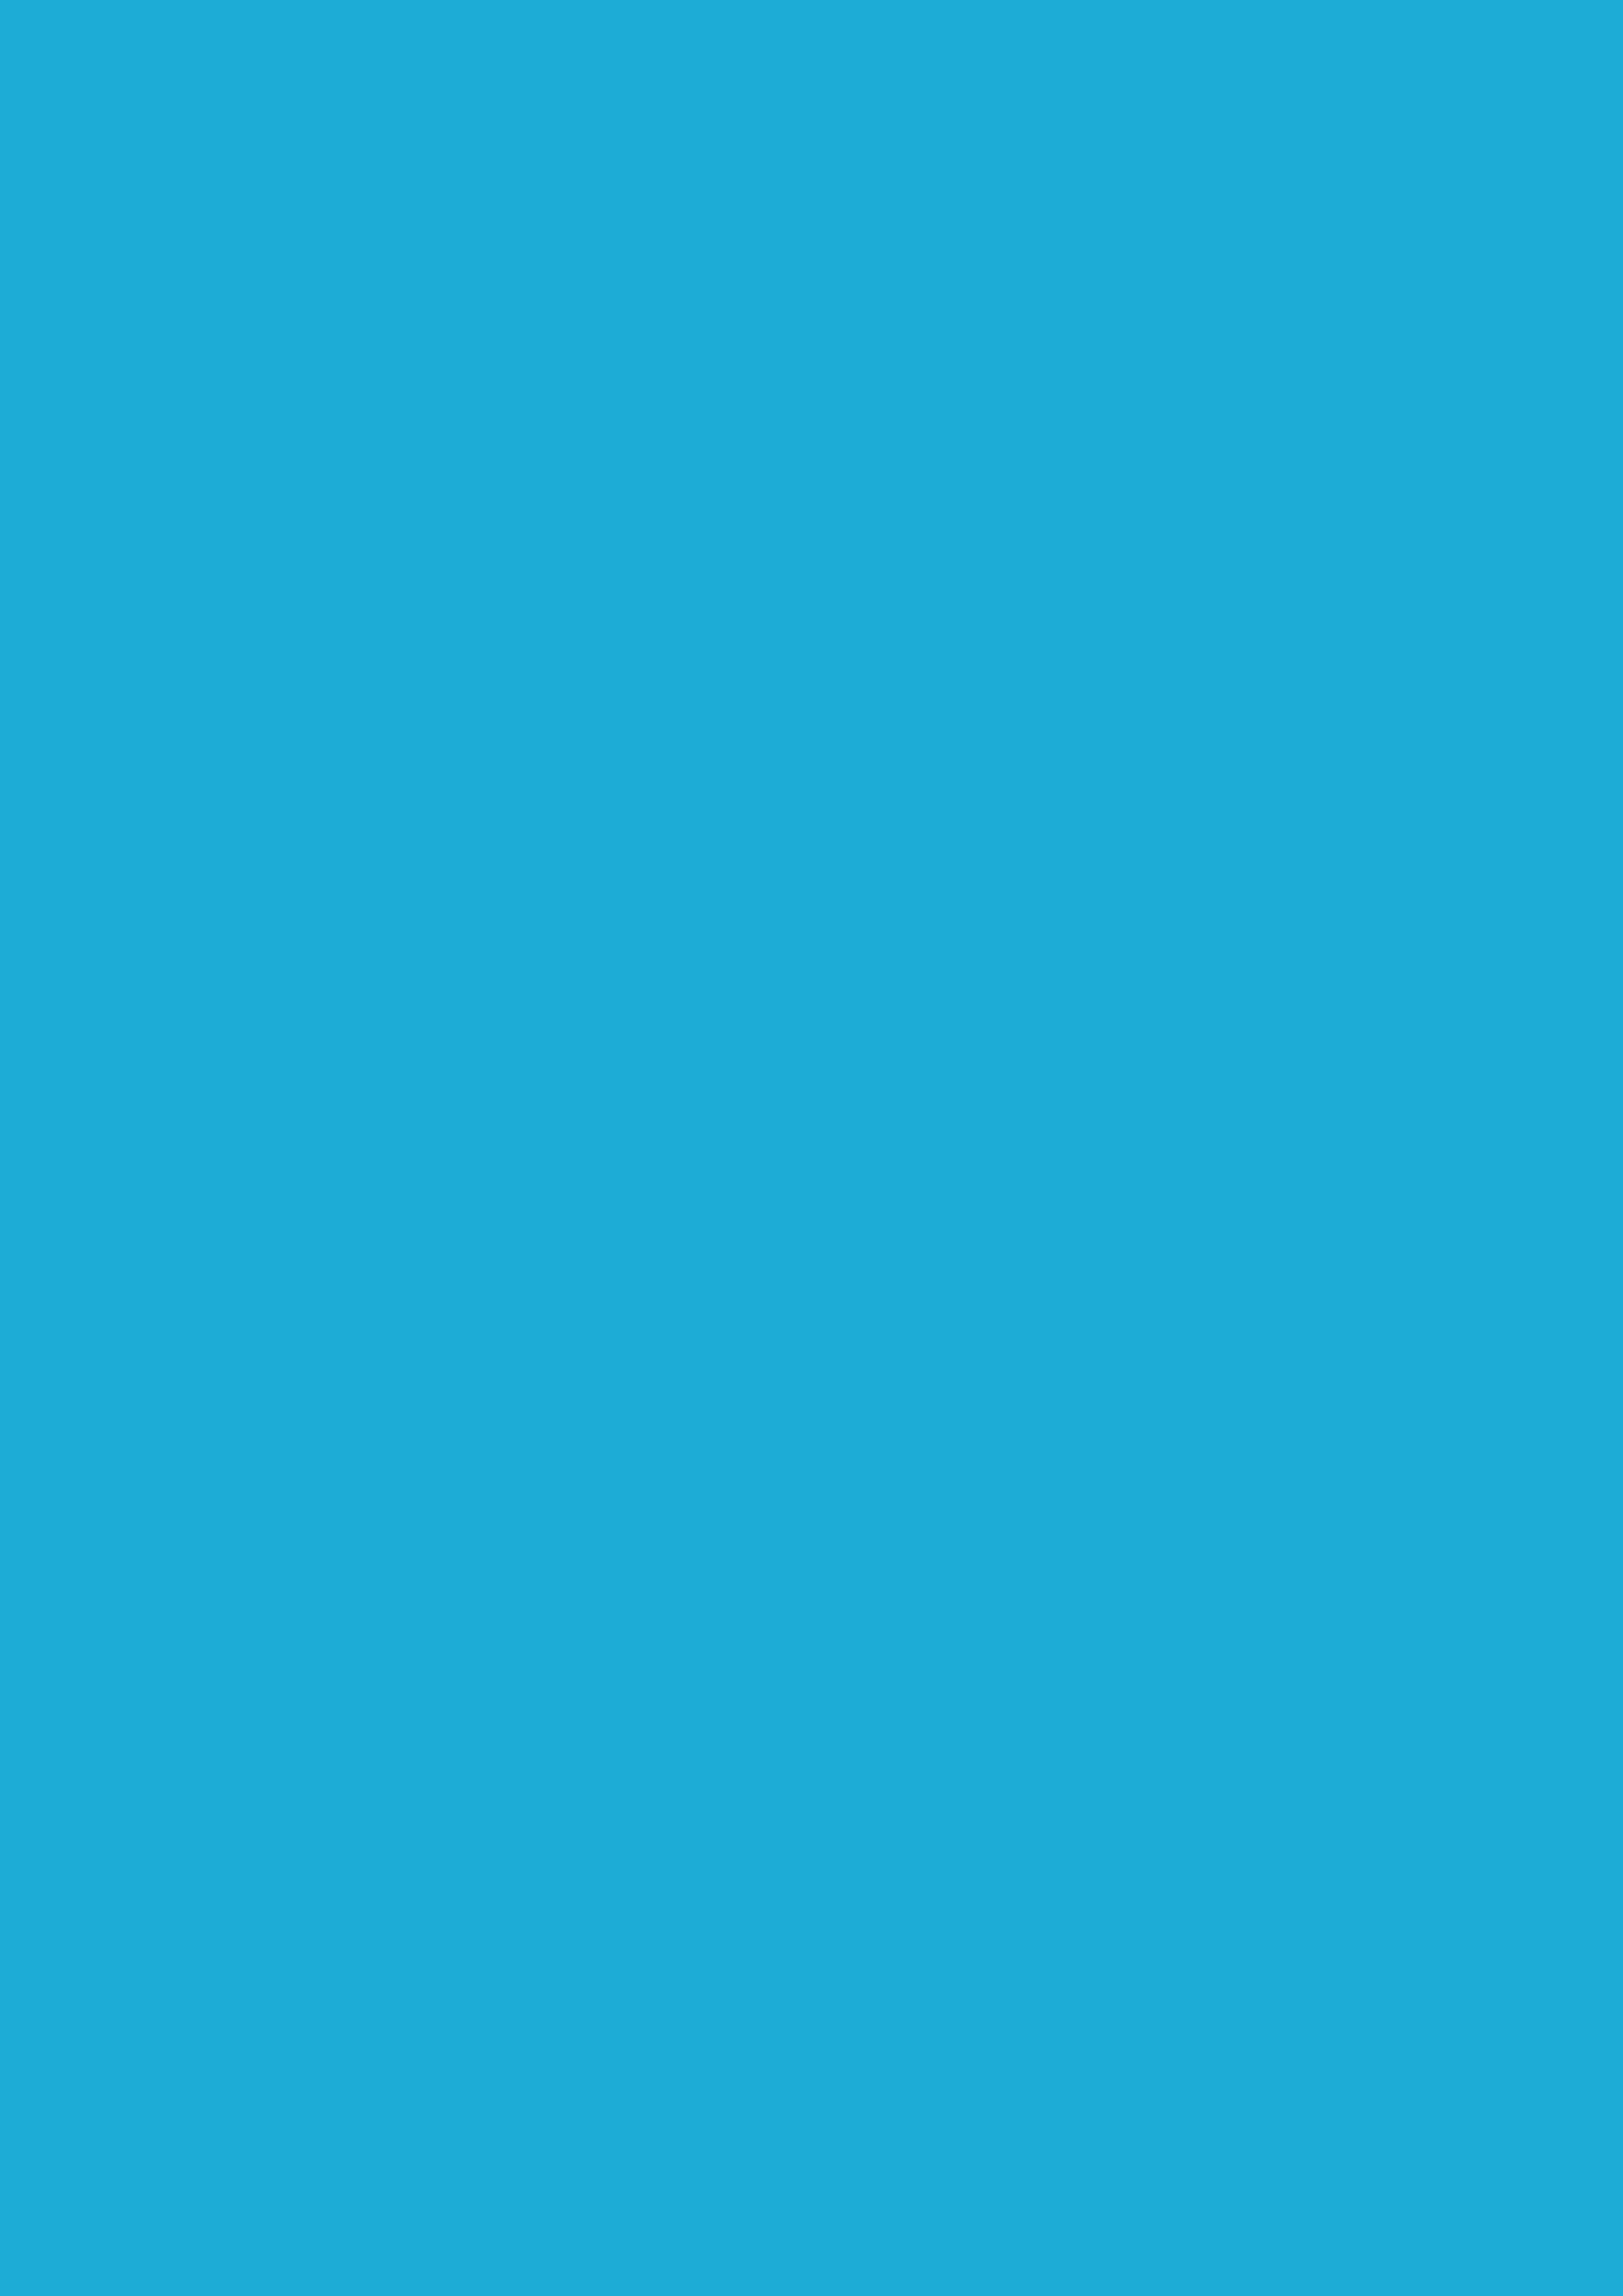 2480x3508 Bright Cerulean Solid Color Background